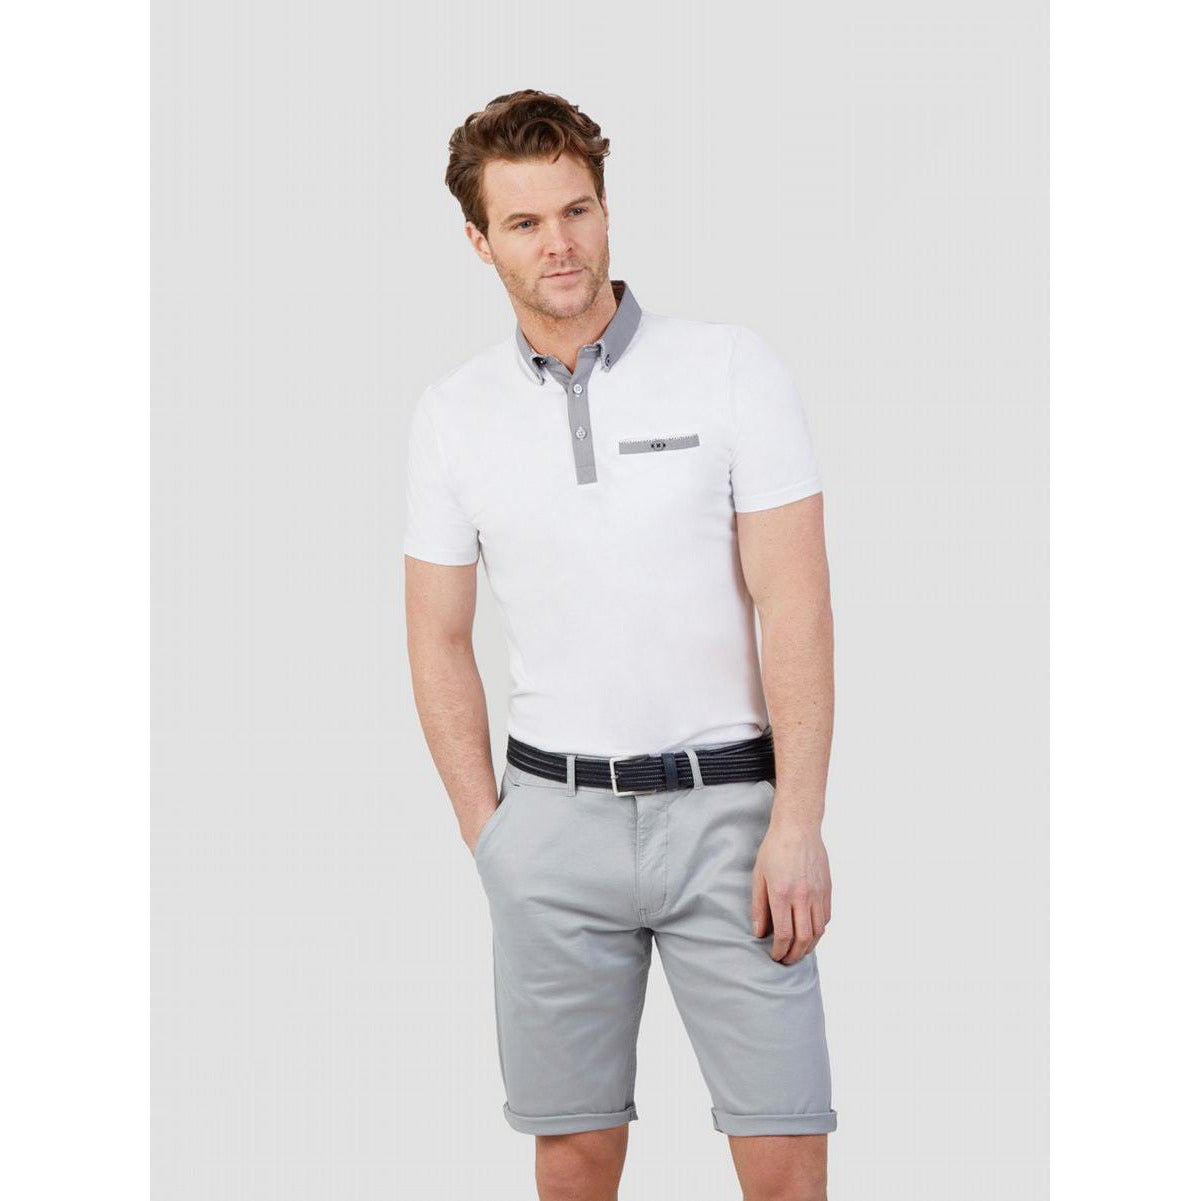 MISH MASH : Shore Break Casual Short Sleeve Polo White